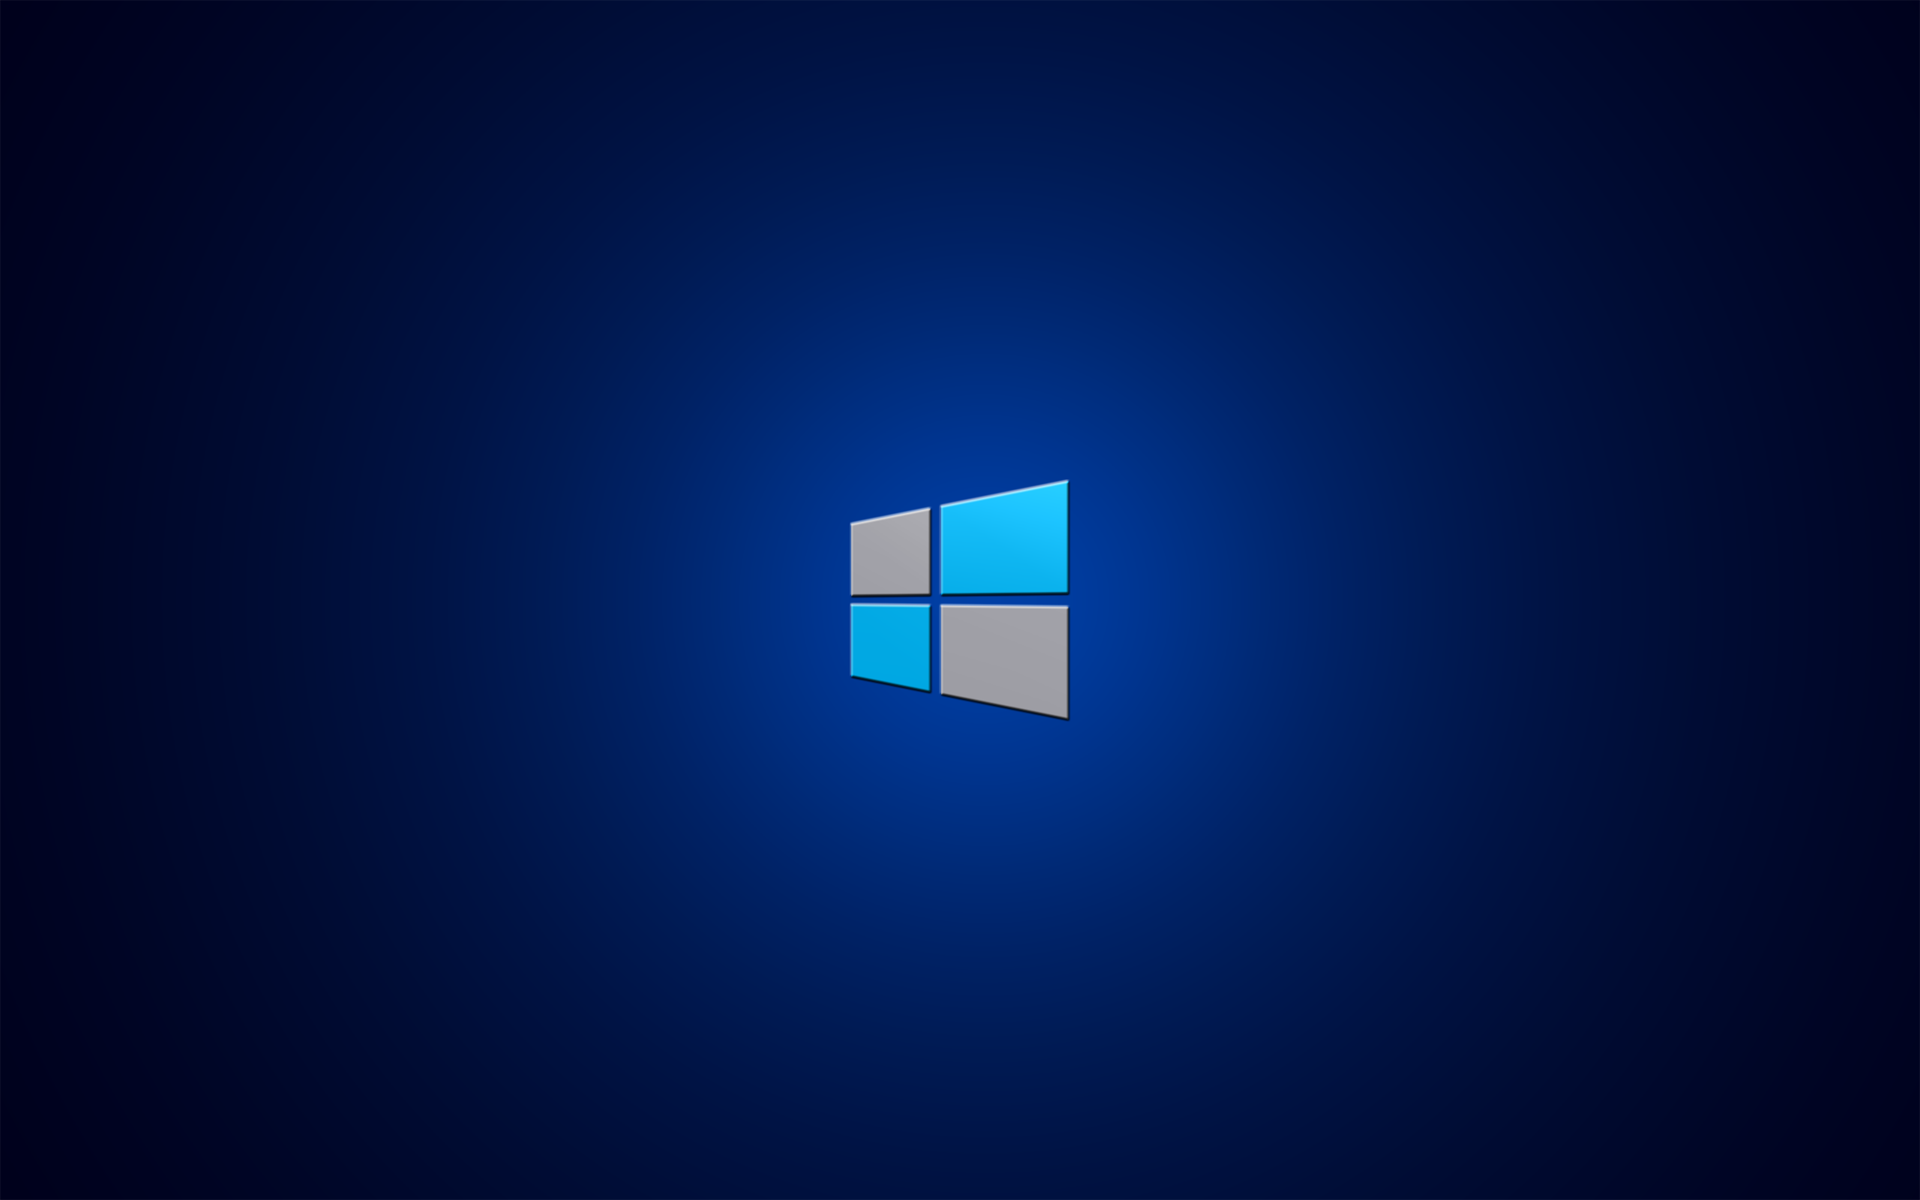 ... Windows 8 Wallpaper 1 ...